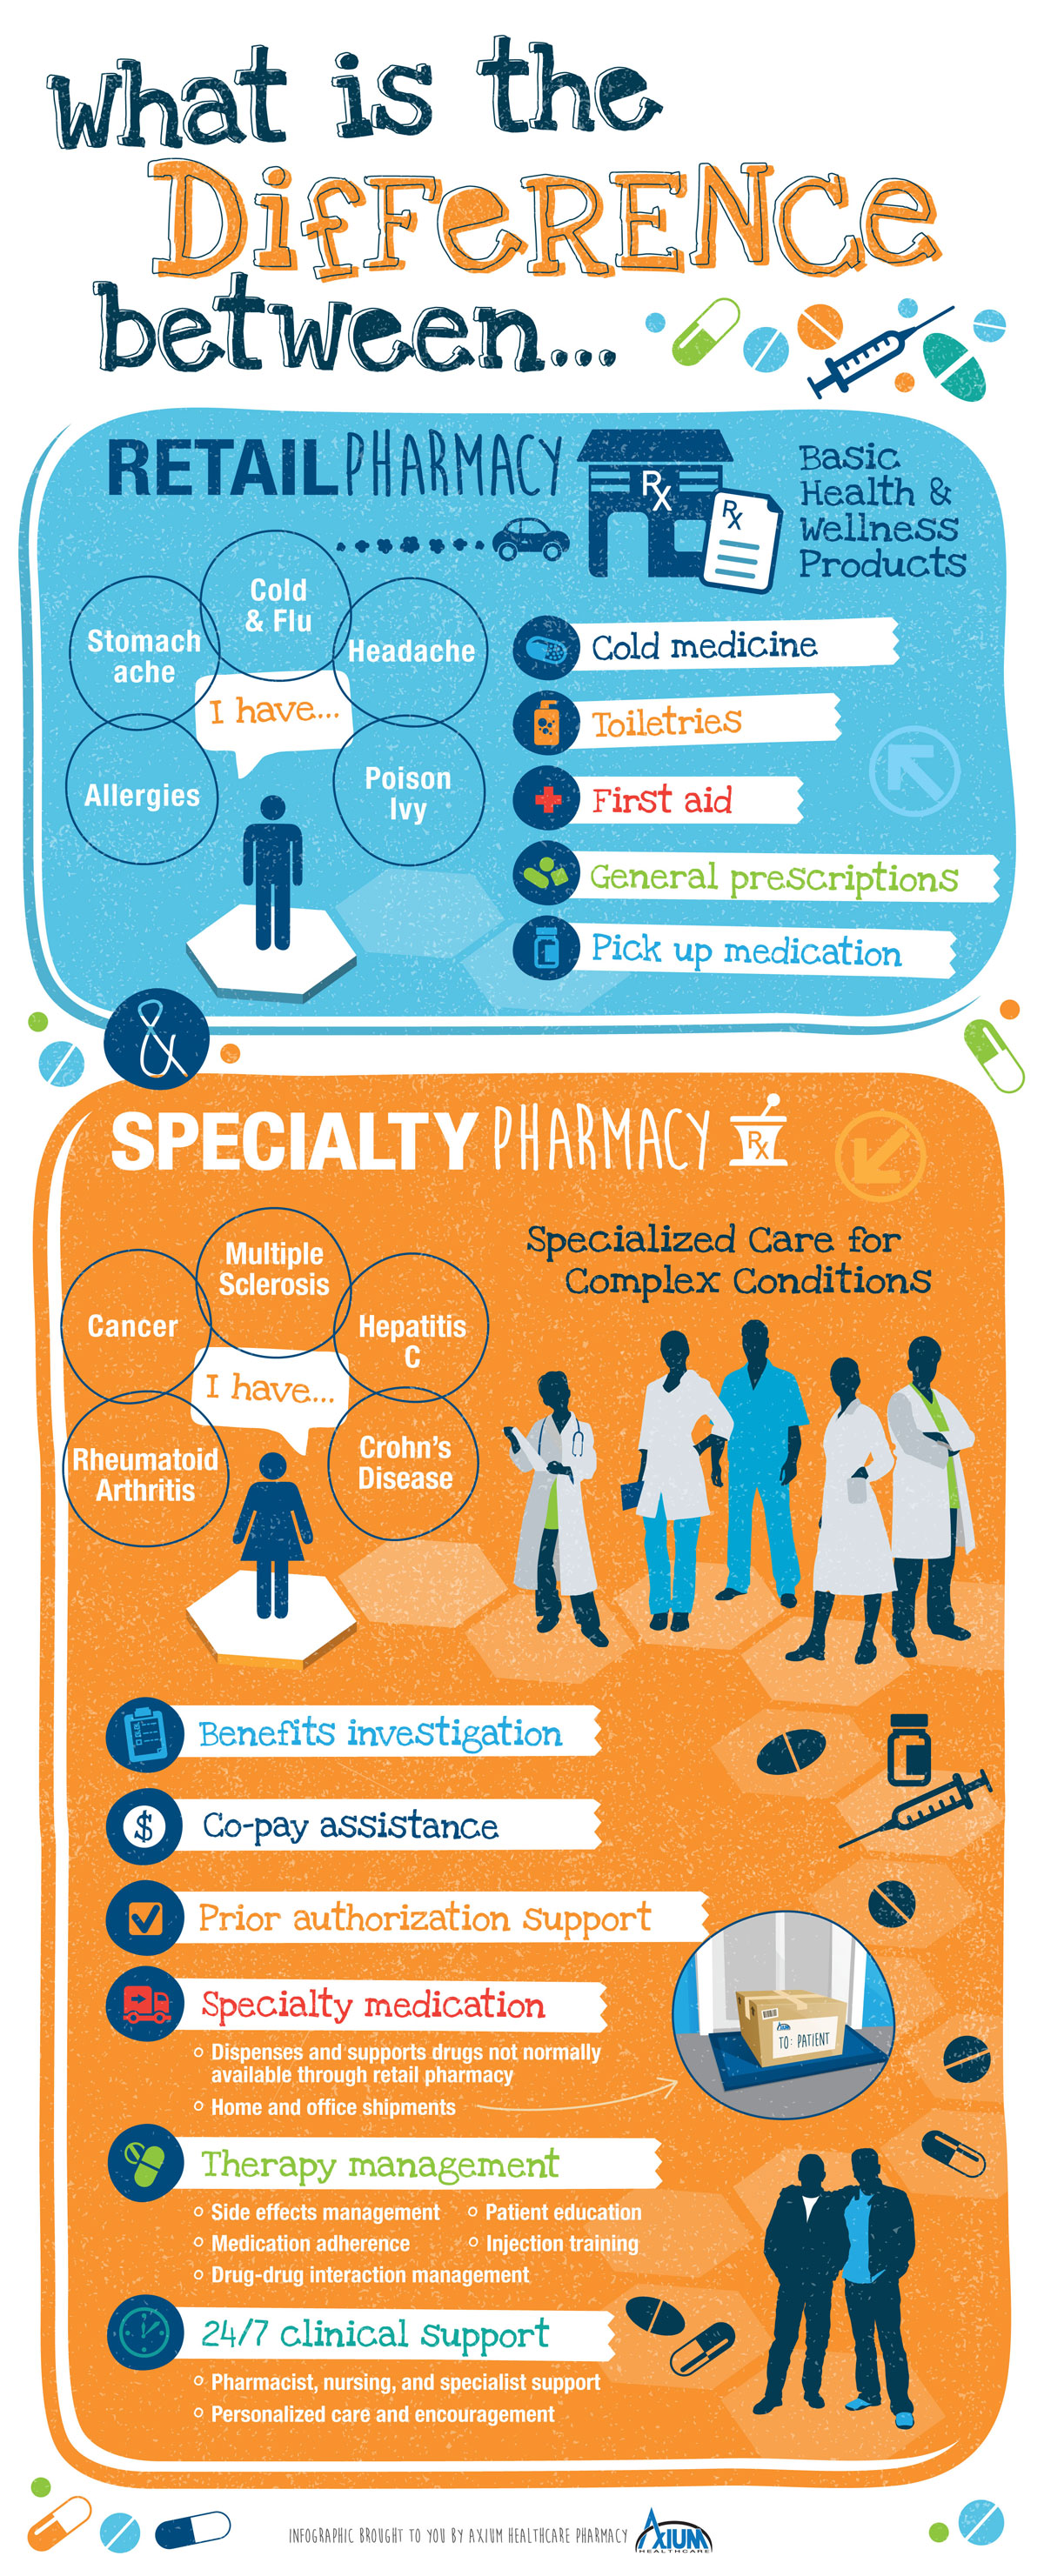 The Difference Between Retail and Specialty Pharmacy